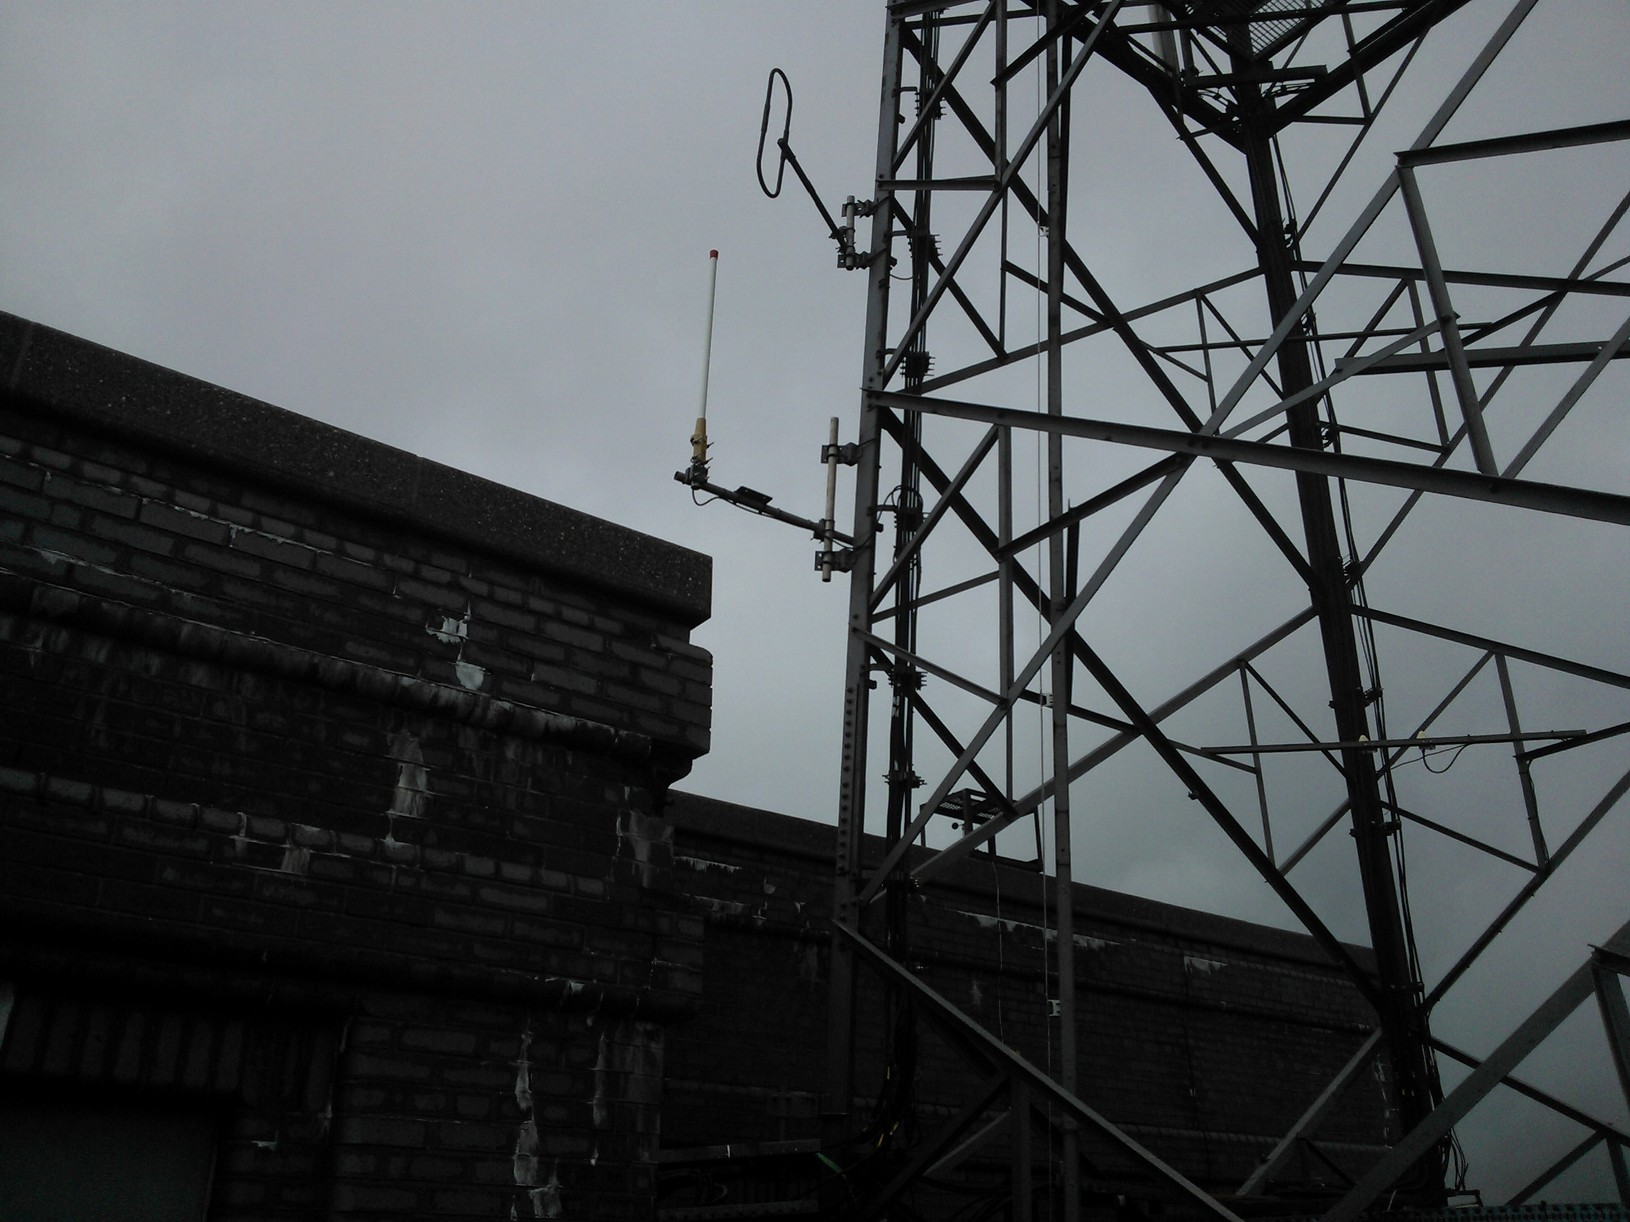 New Antenna in Temporary Location